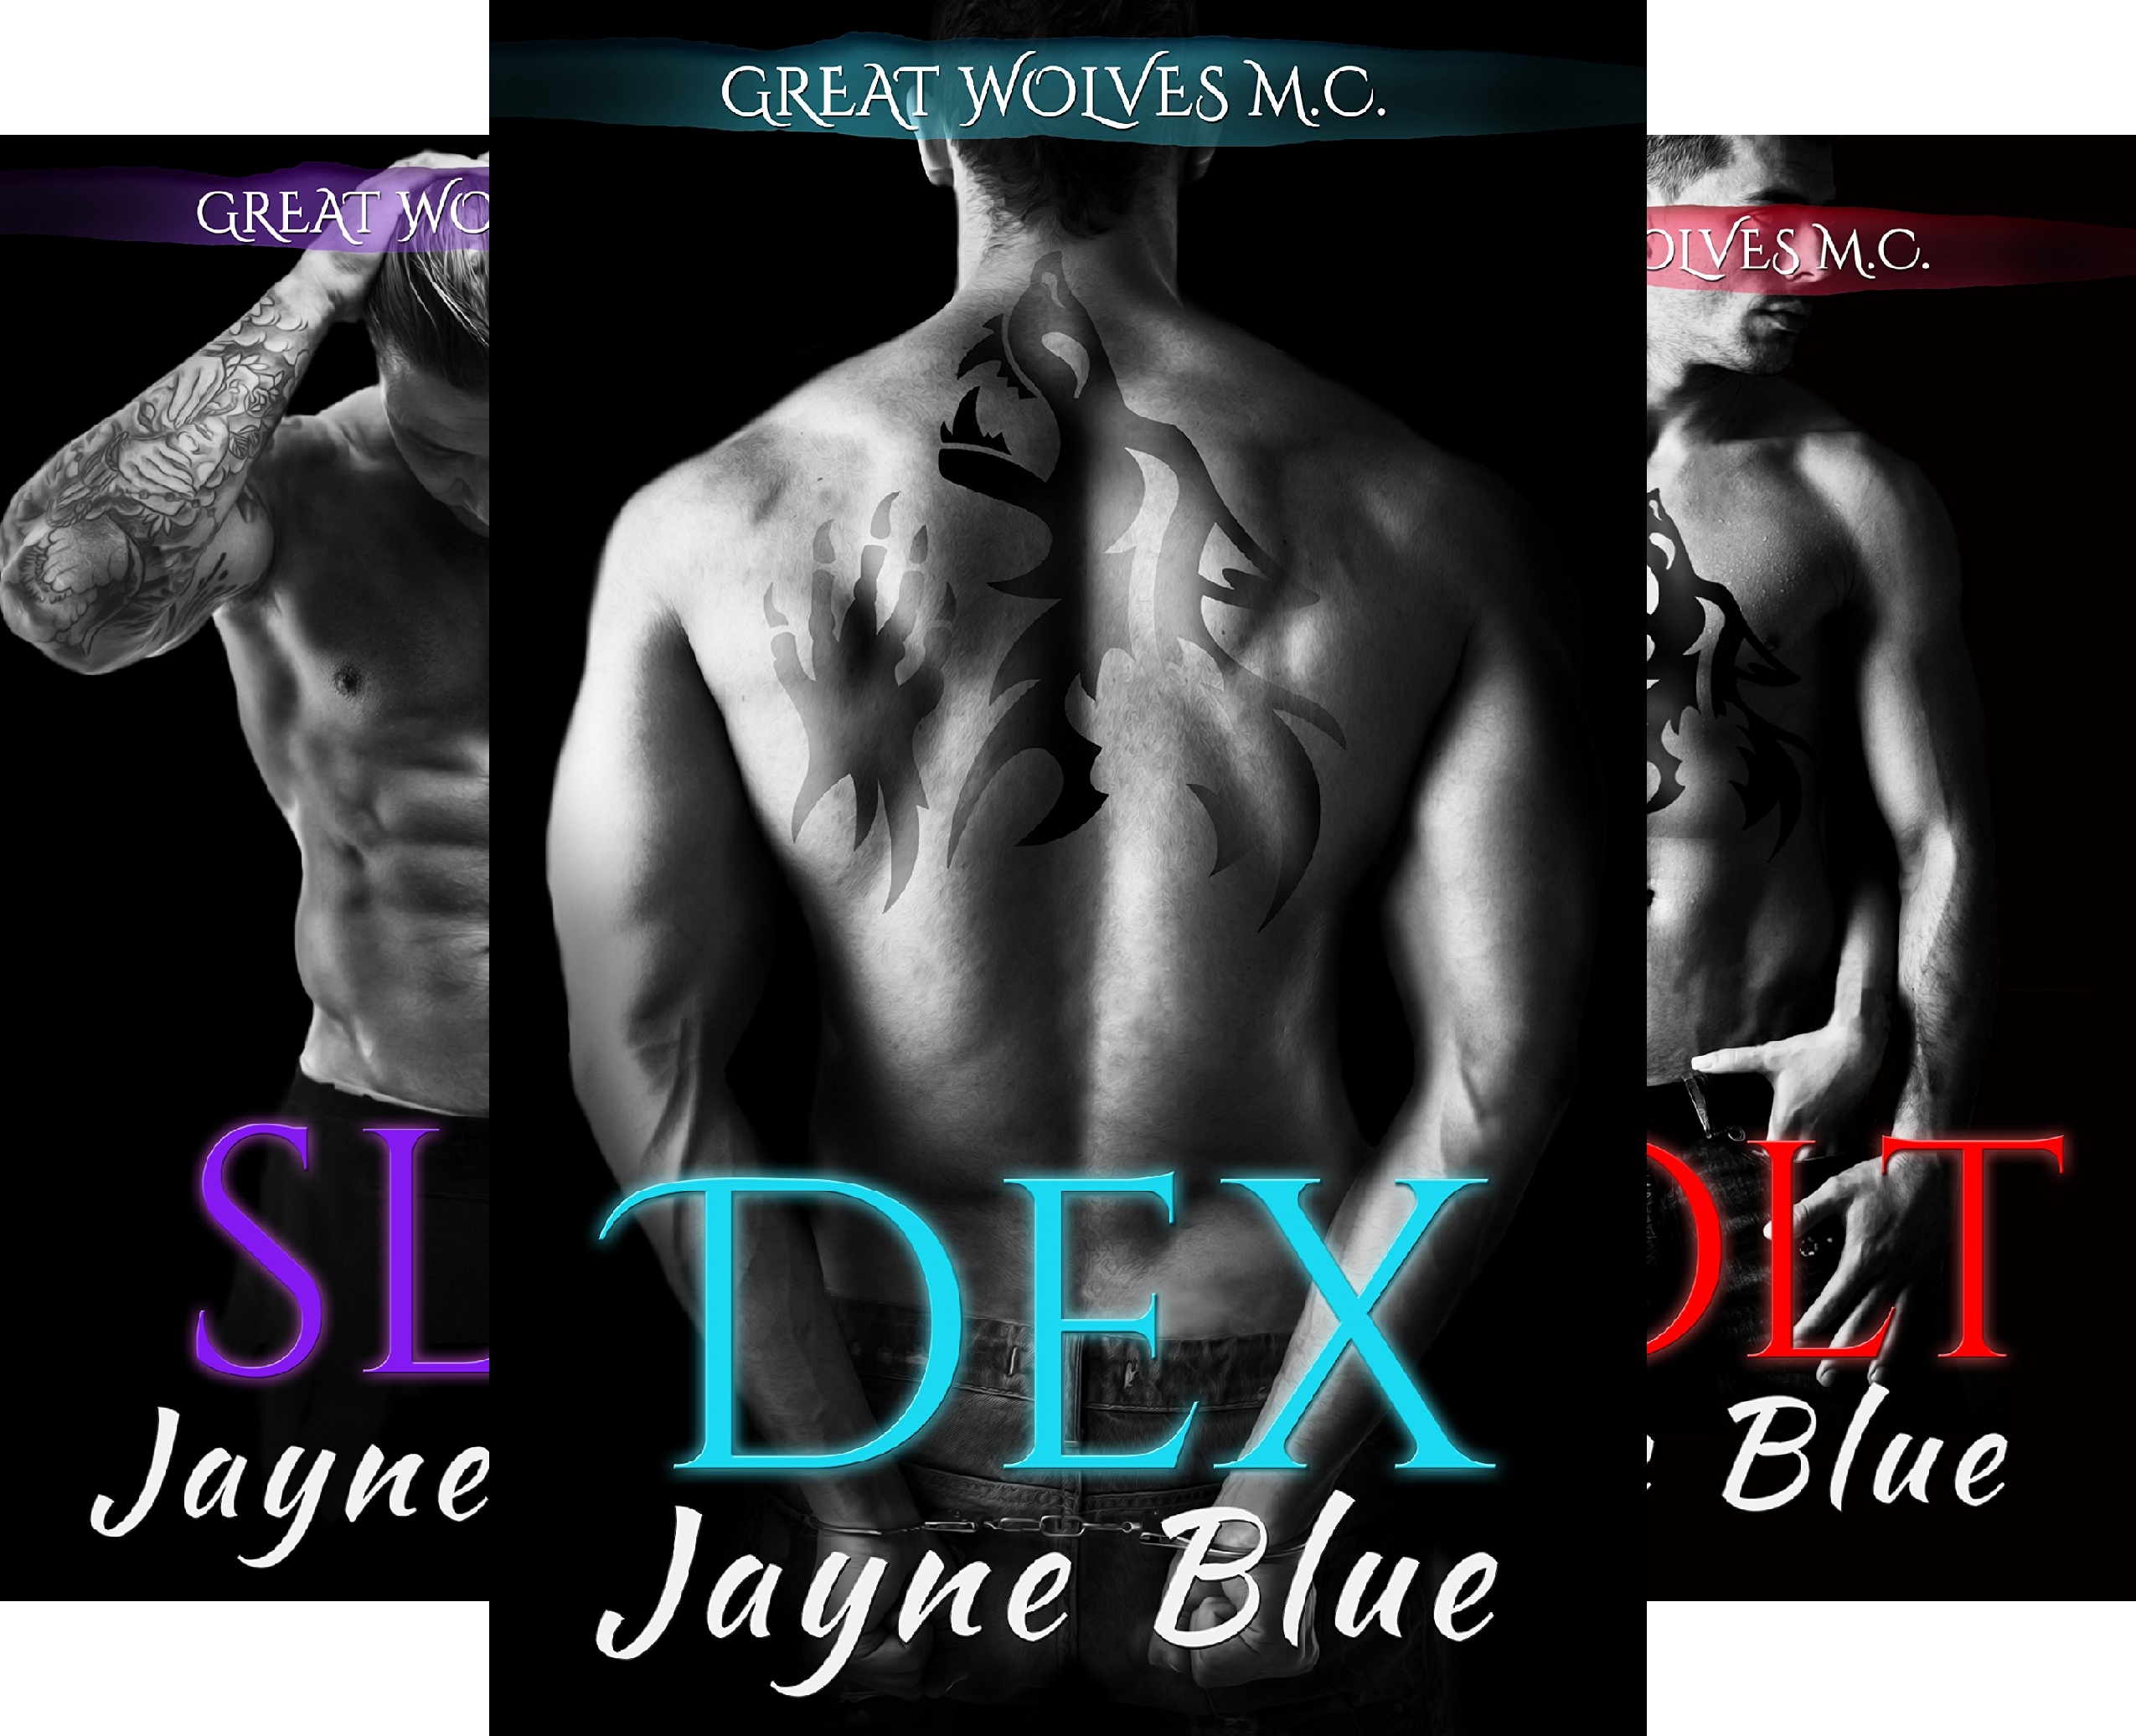 Great Wolves Motorcycle Club (16 Book Series) - 16 Club